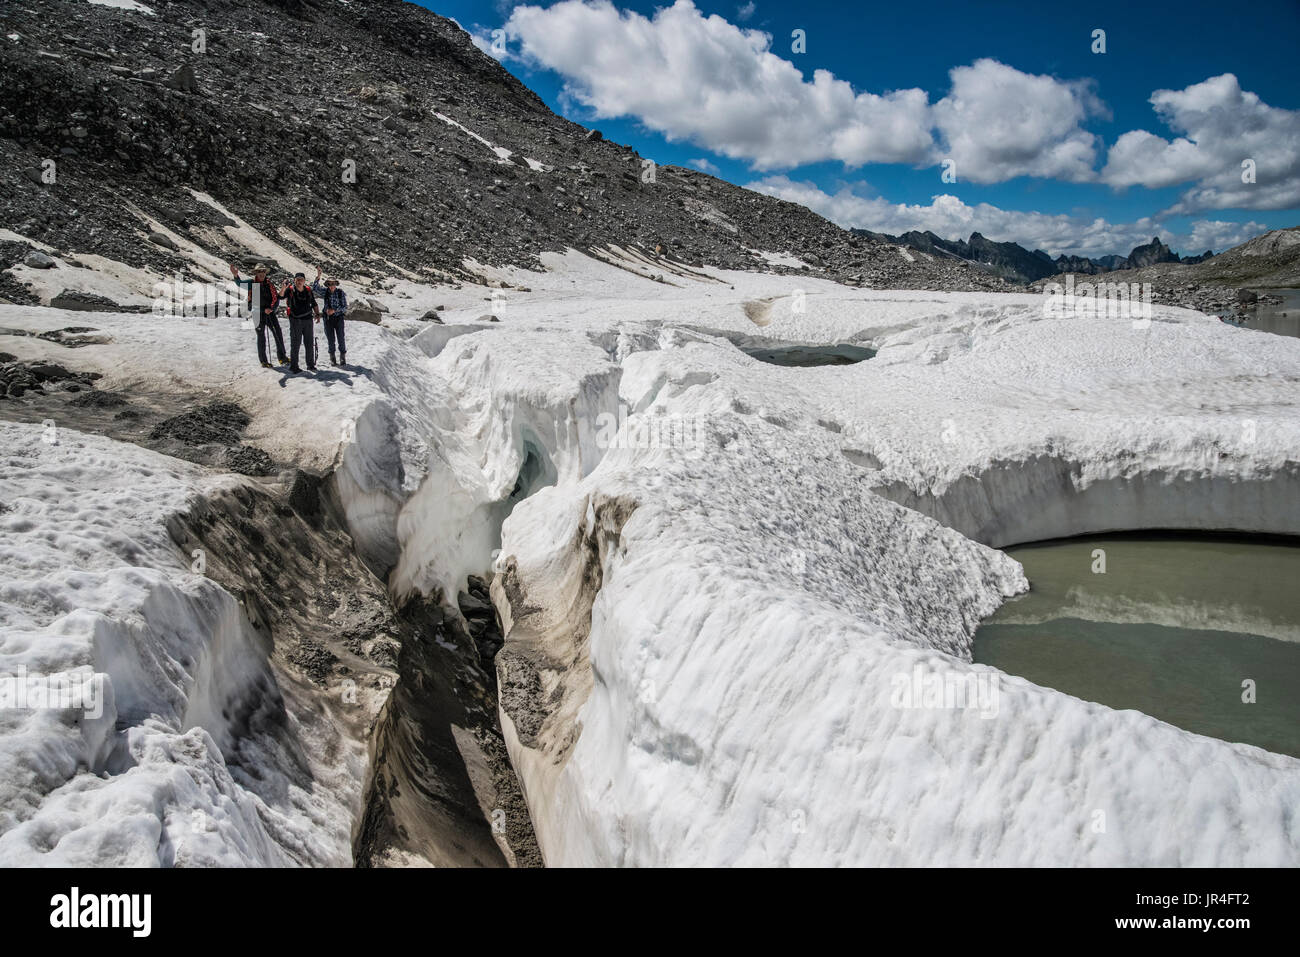 Trekking in the Zillertal seen here with mountaineers on ice remnants of the Stillupp Kees glacier Stock Photo